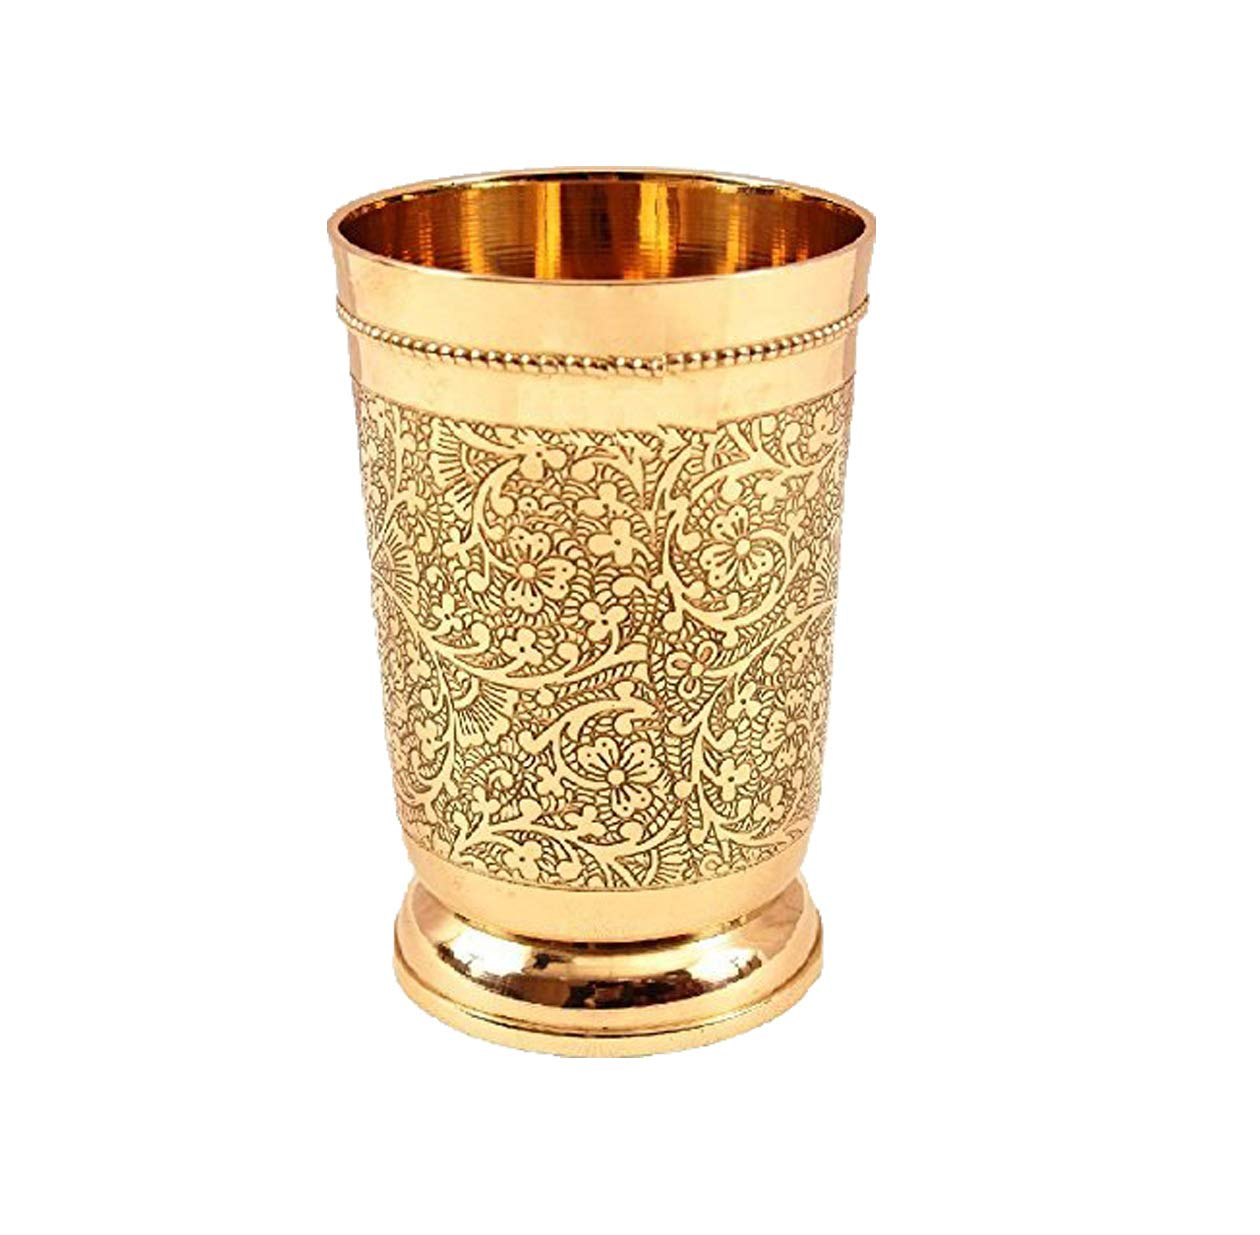 Embossed Designer Brass Mint Julep Cup Goblet Tumbler Capacity 12 Ounce Each